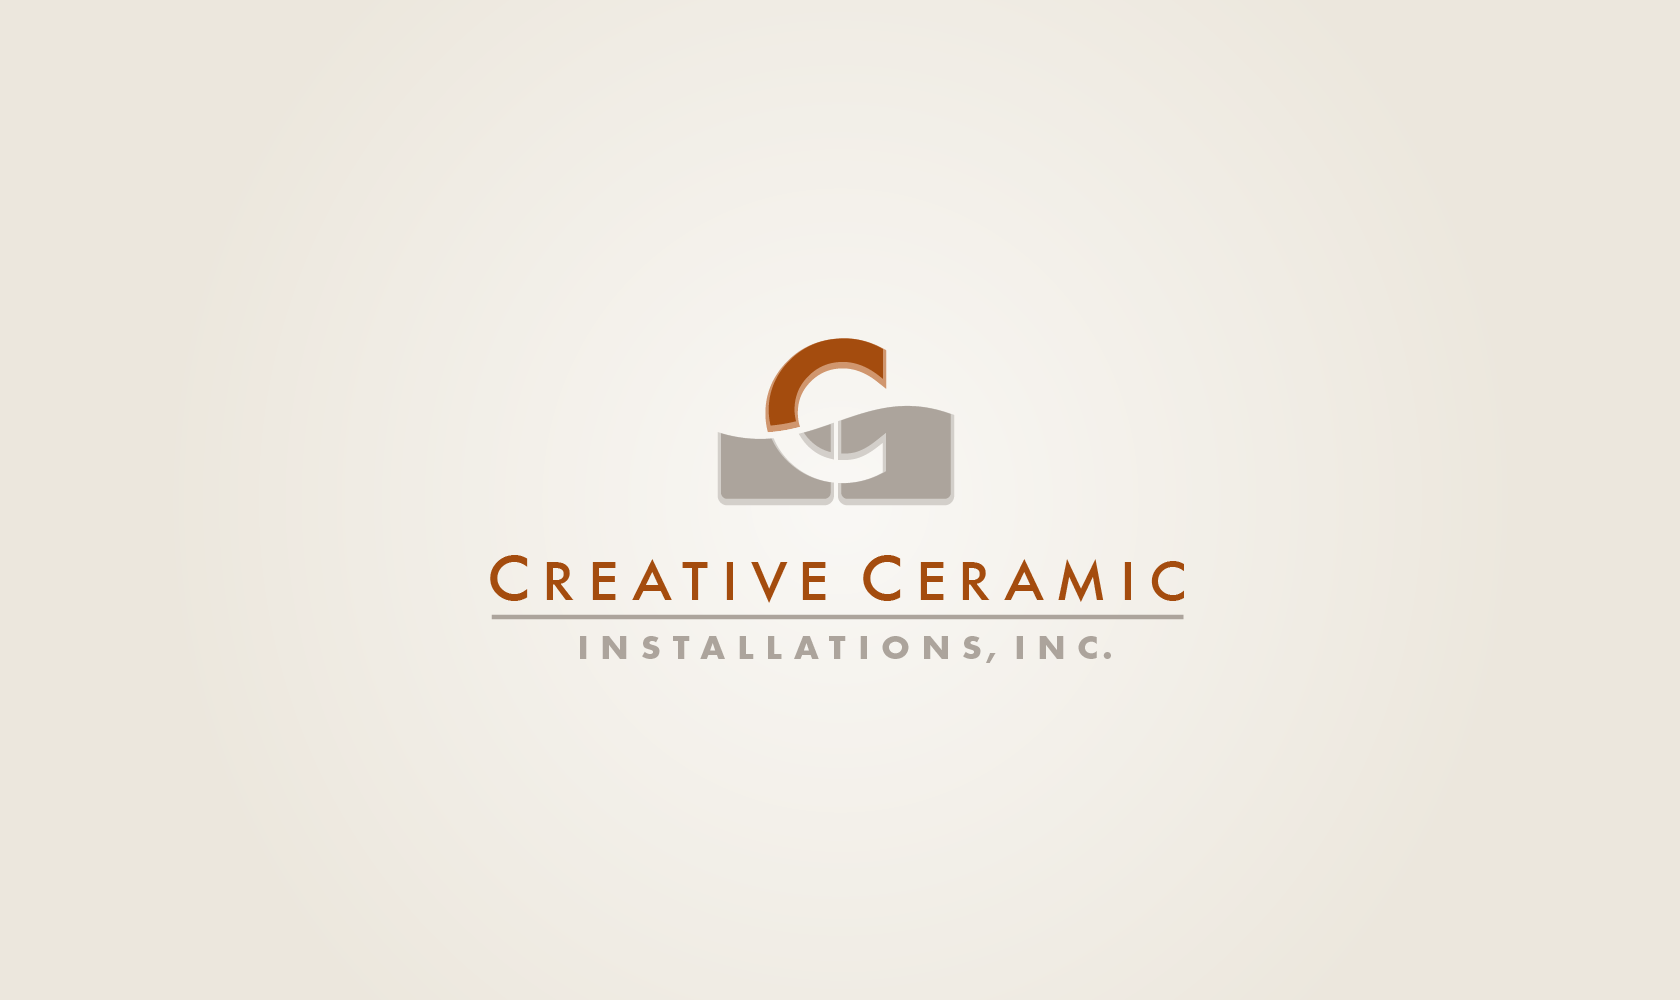 Bill Rogers Design - Creative Ceramic Installations, Inc. - Logo Design - Brand Identity Design